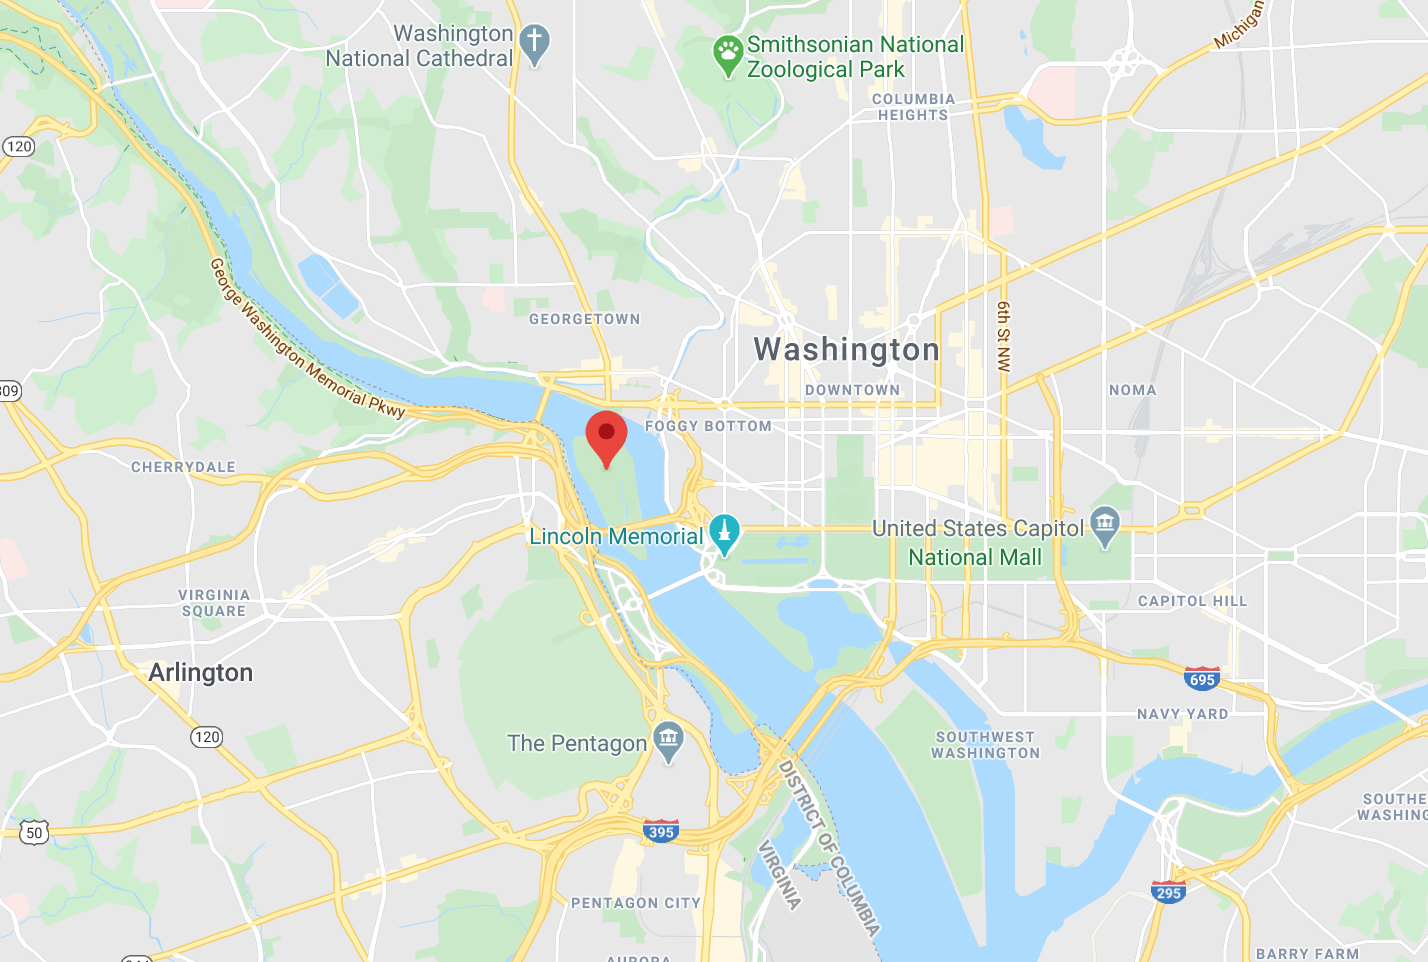 map of D.C.